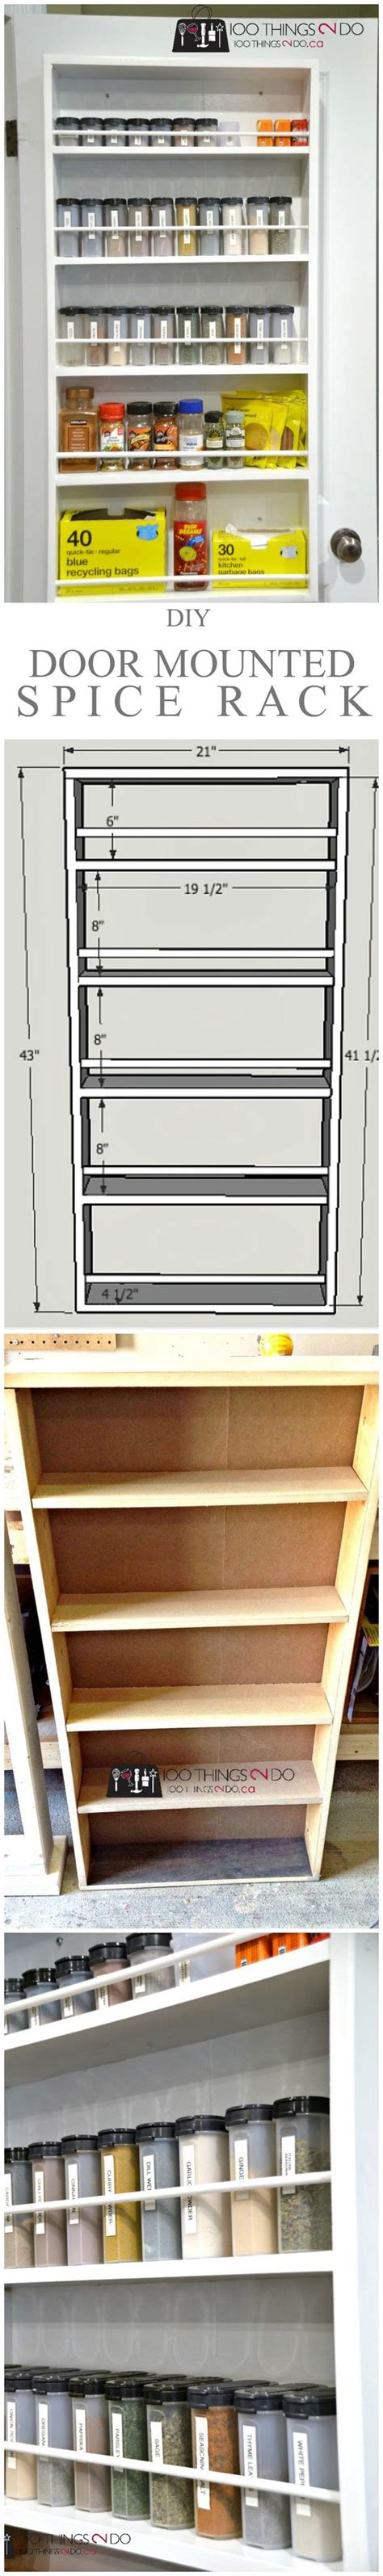 Door Mounted Spice Racks For Cabinets Pinterest The World S Catalog Of Ideas